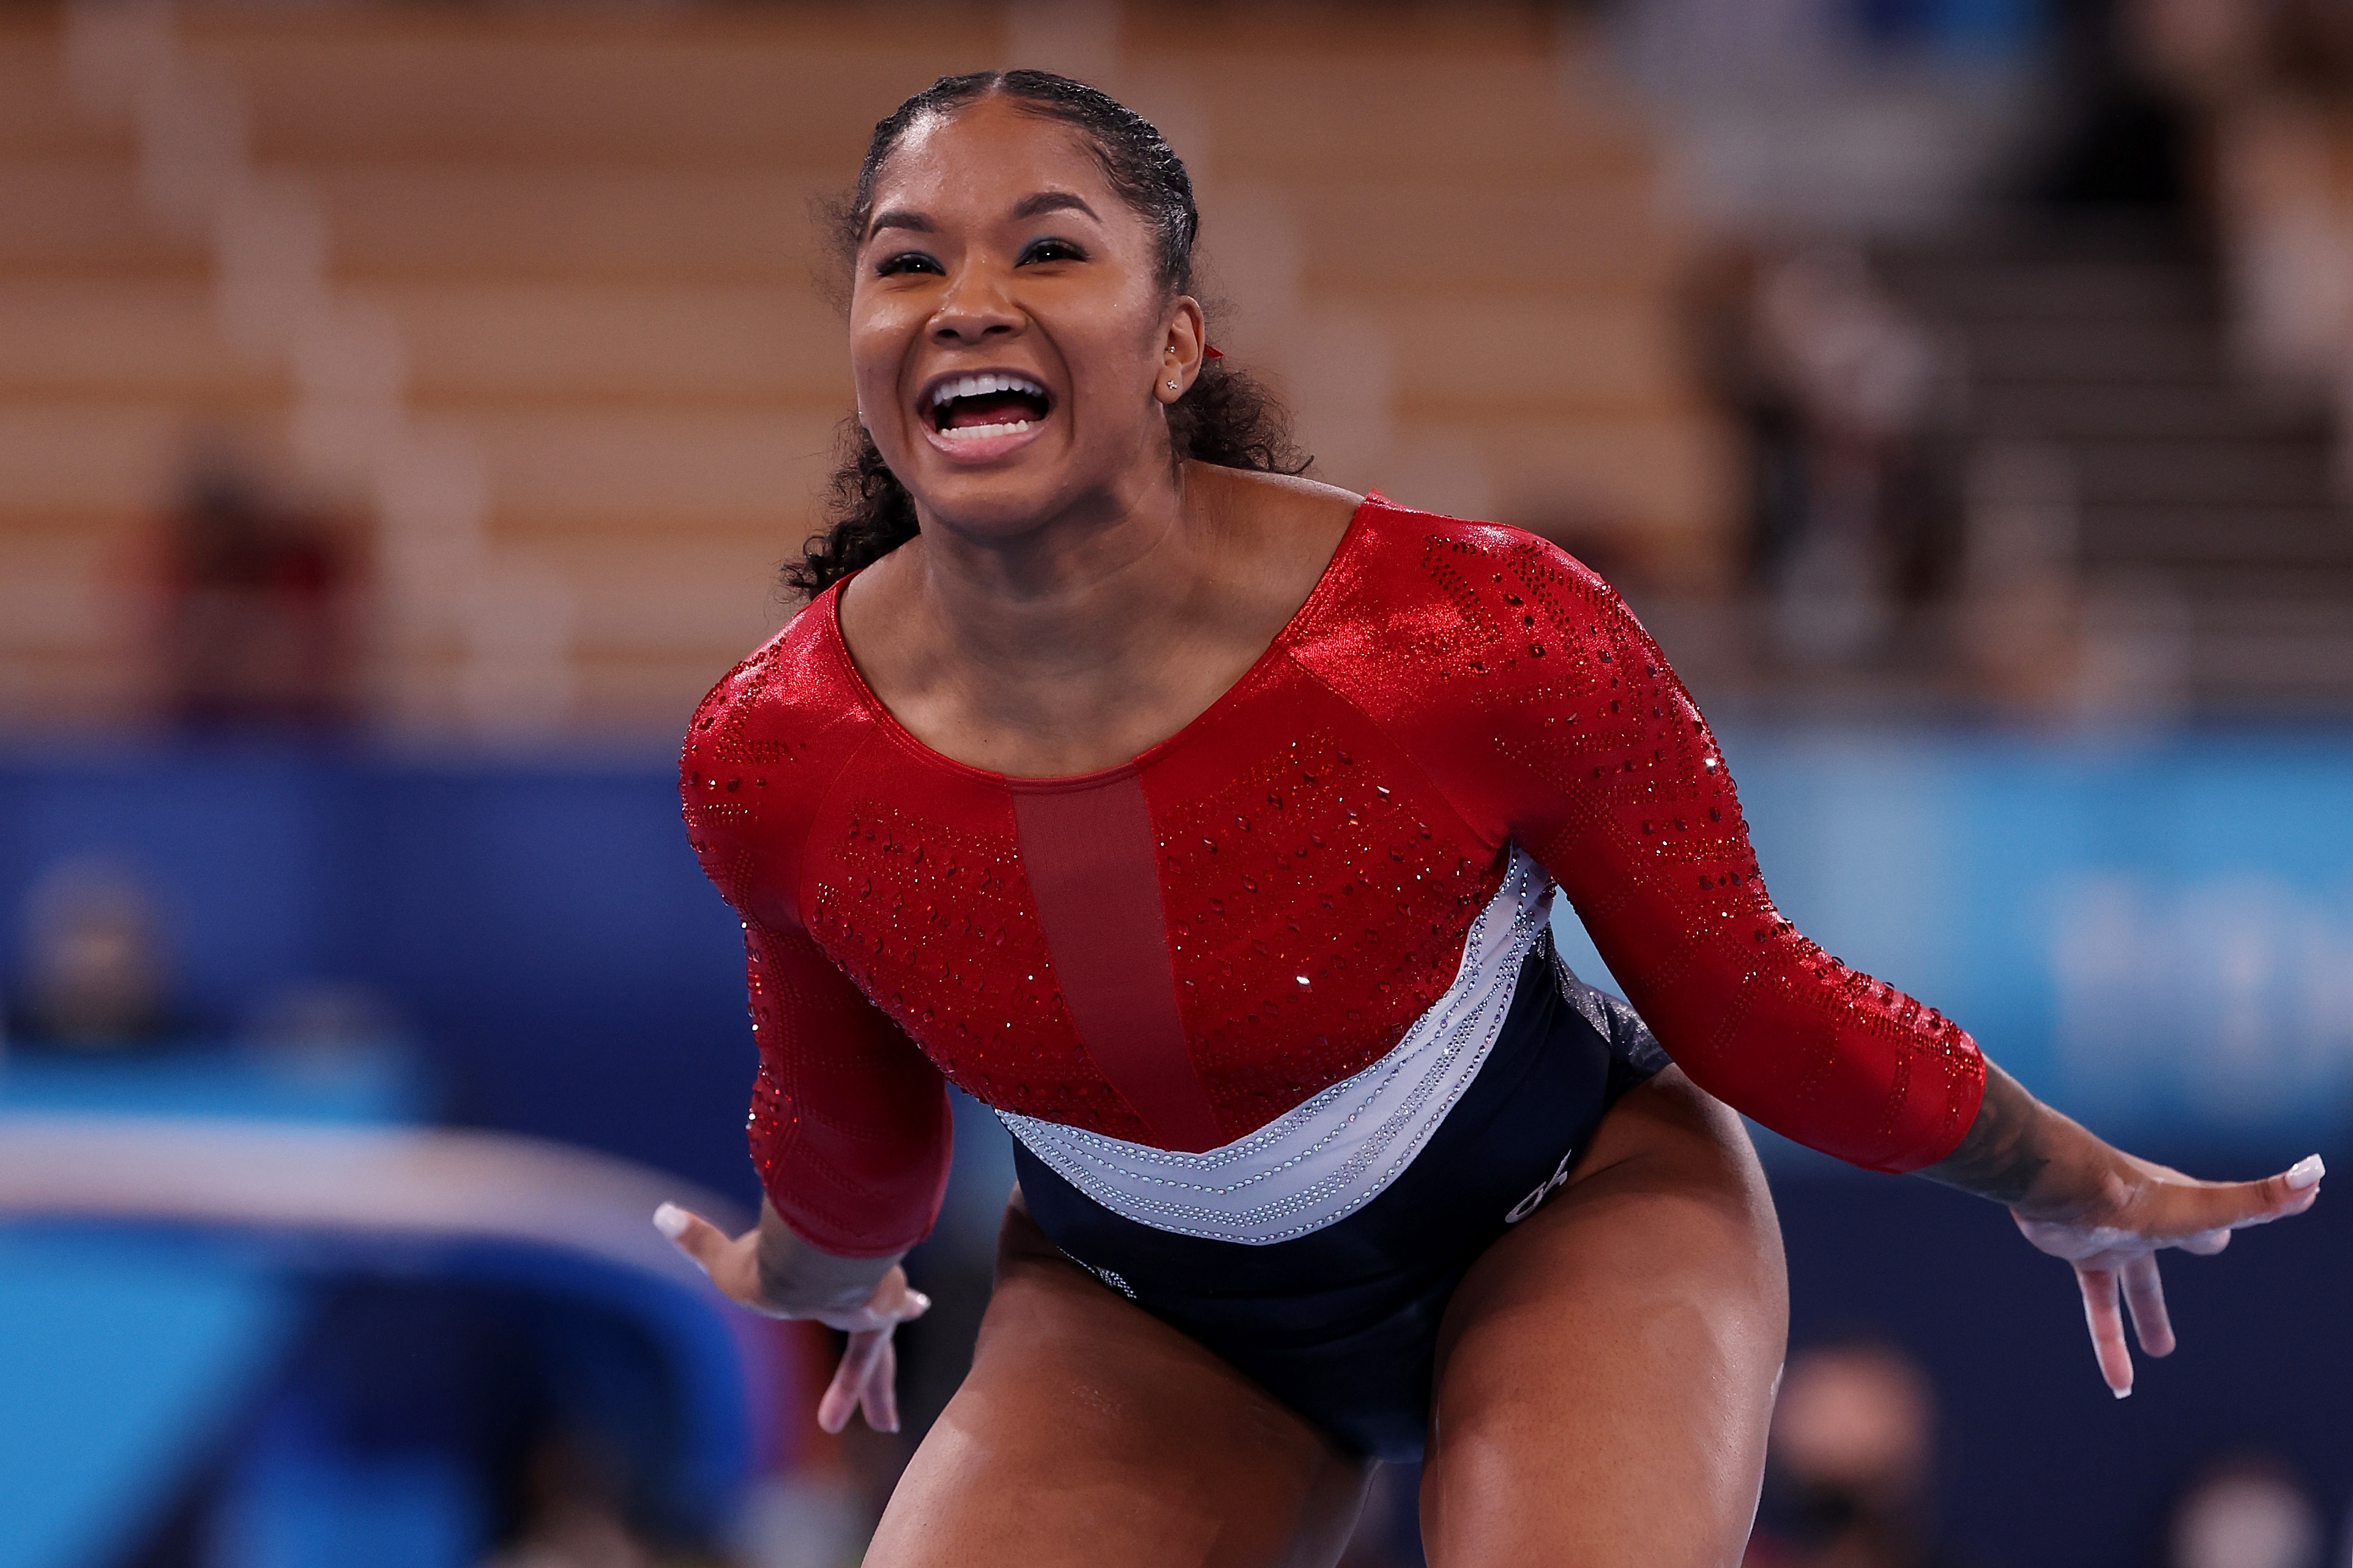 Jordan Chiles of Team United States reacts as she competes in the balance beam during the Women's Team Final on July 27.